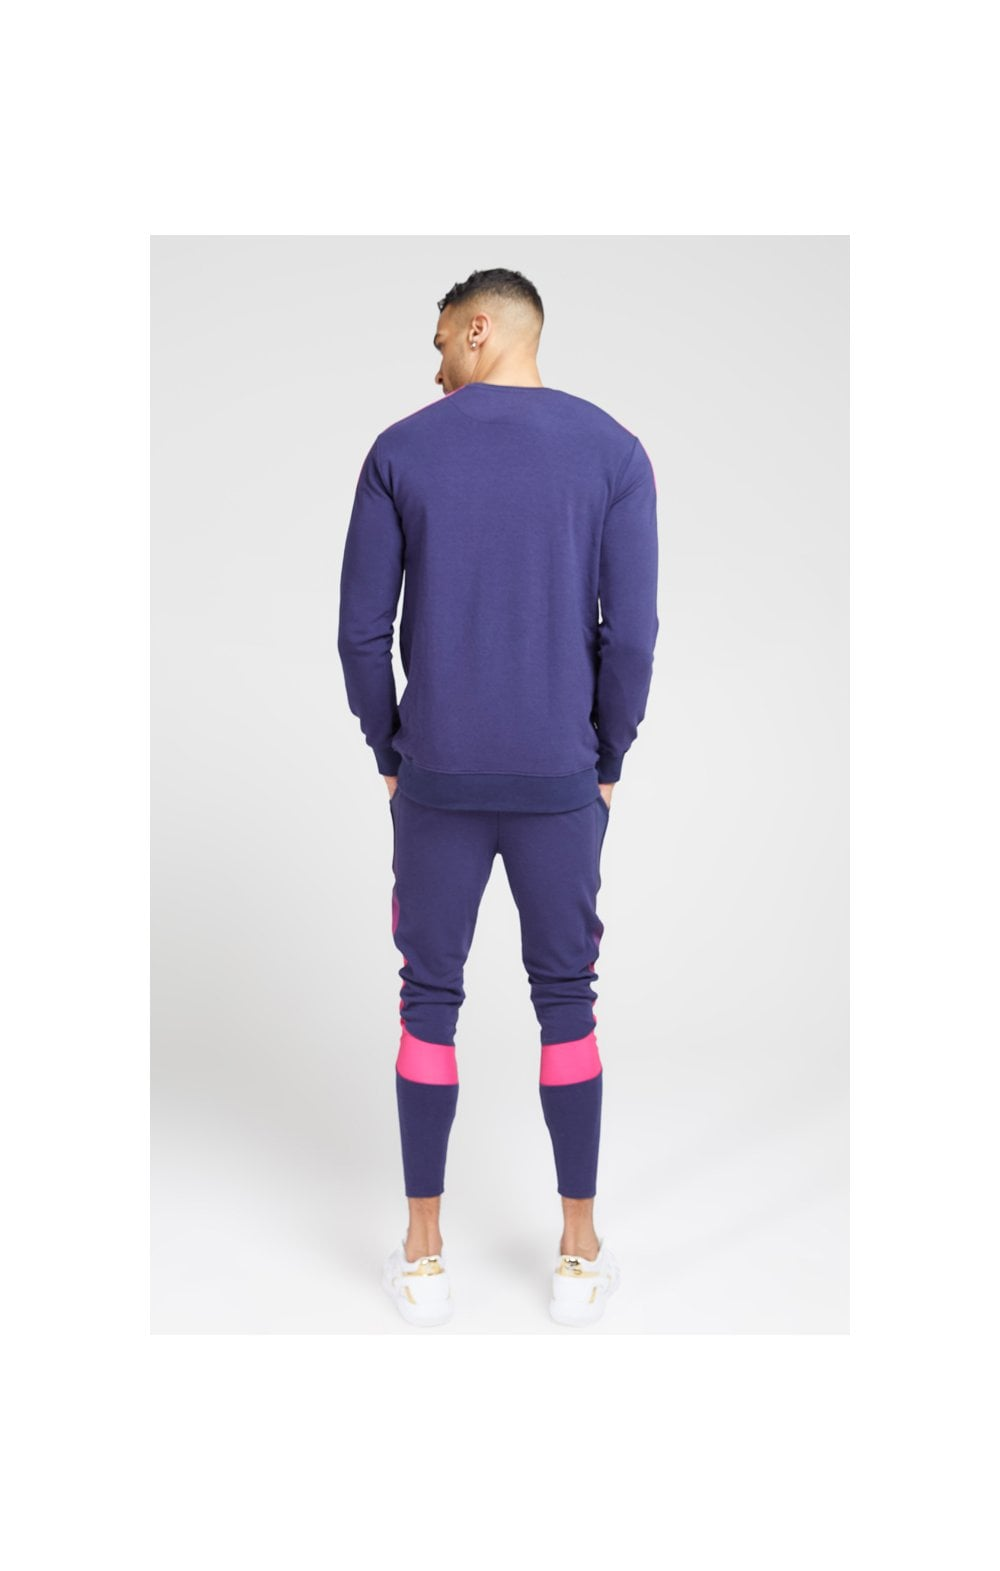 Load image into Gallery viewer, SikSilk Fade Panel Crew Sweat – Navy & Neon Fade (4)